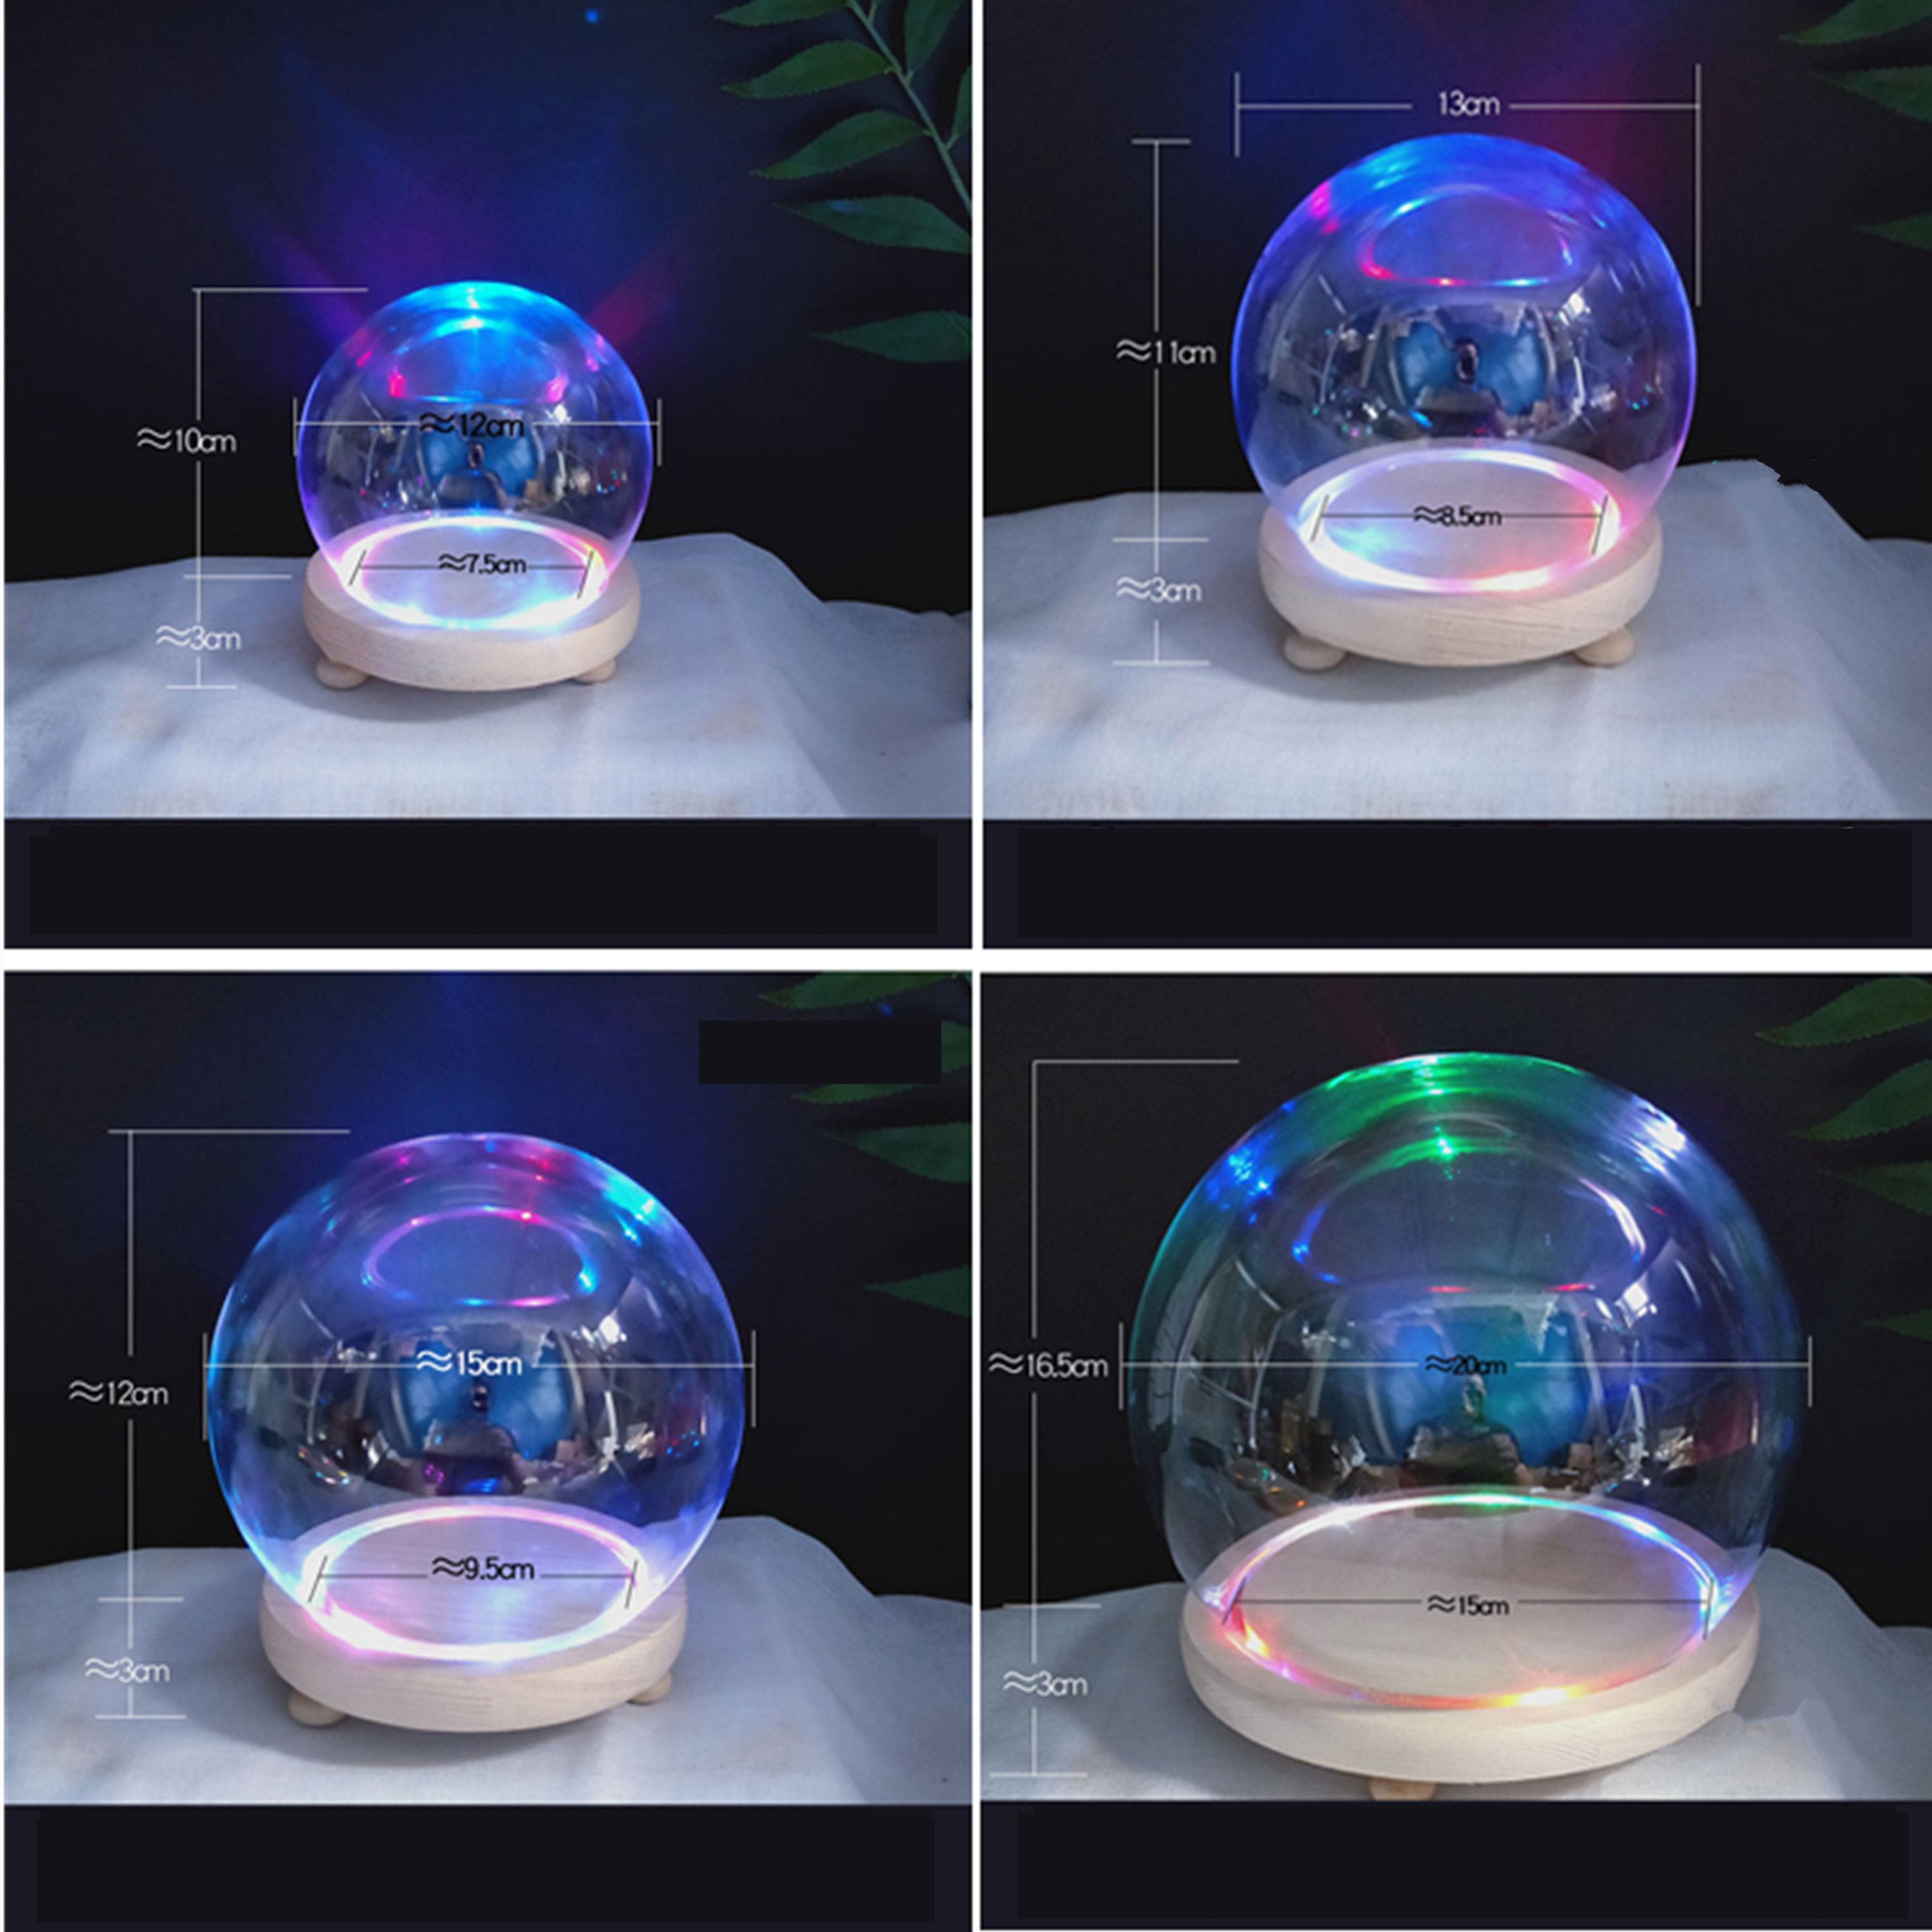 Promotional 20cm Diameter Empty Snow Globe DIY Gift Glass Snow Dome With Base With LED Light Transparent Cake Cover Wholesales